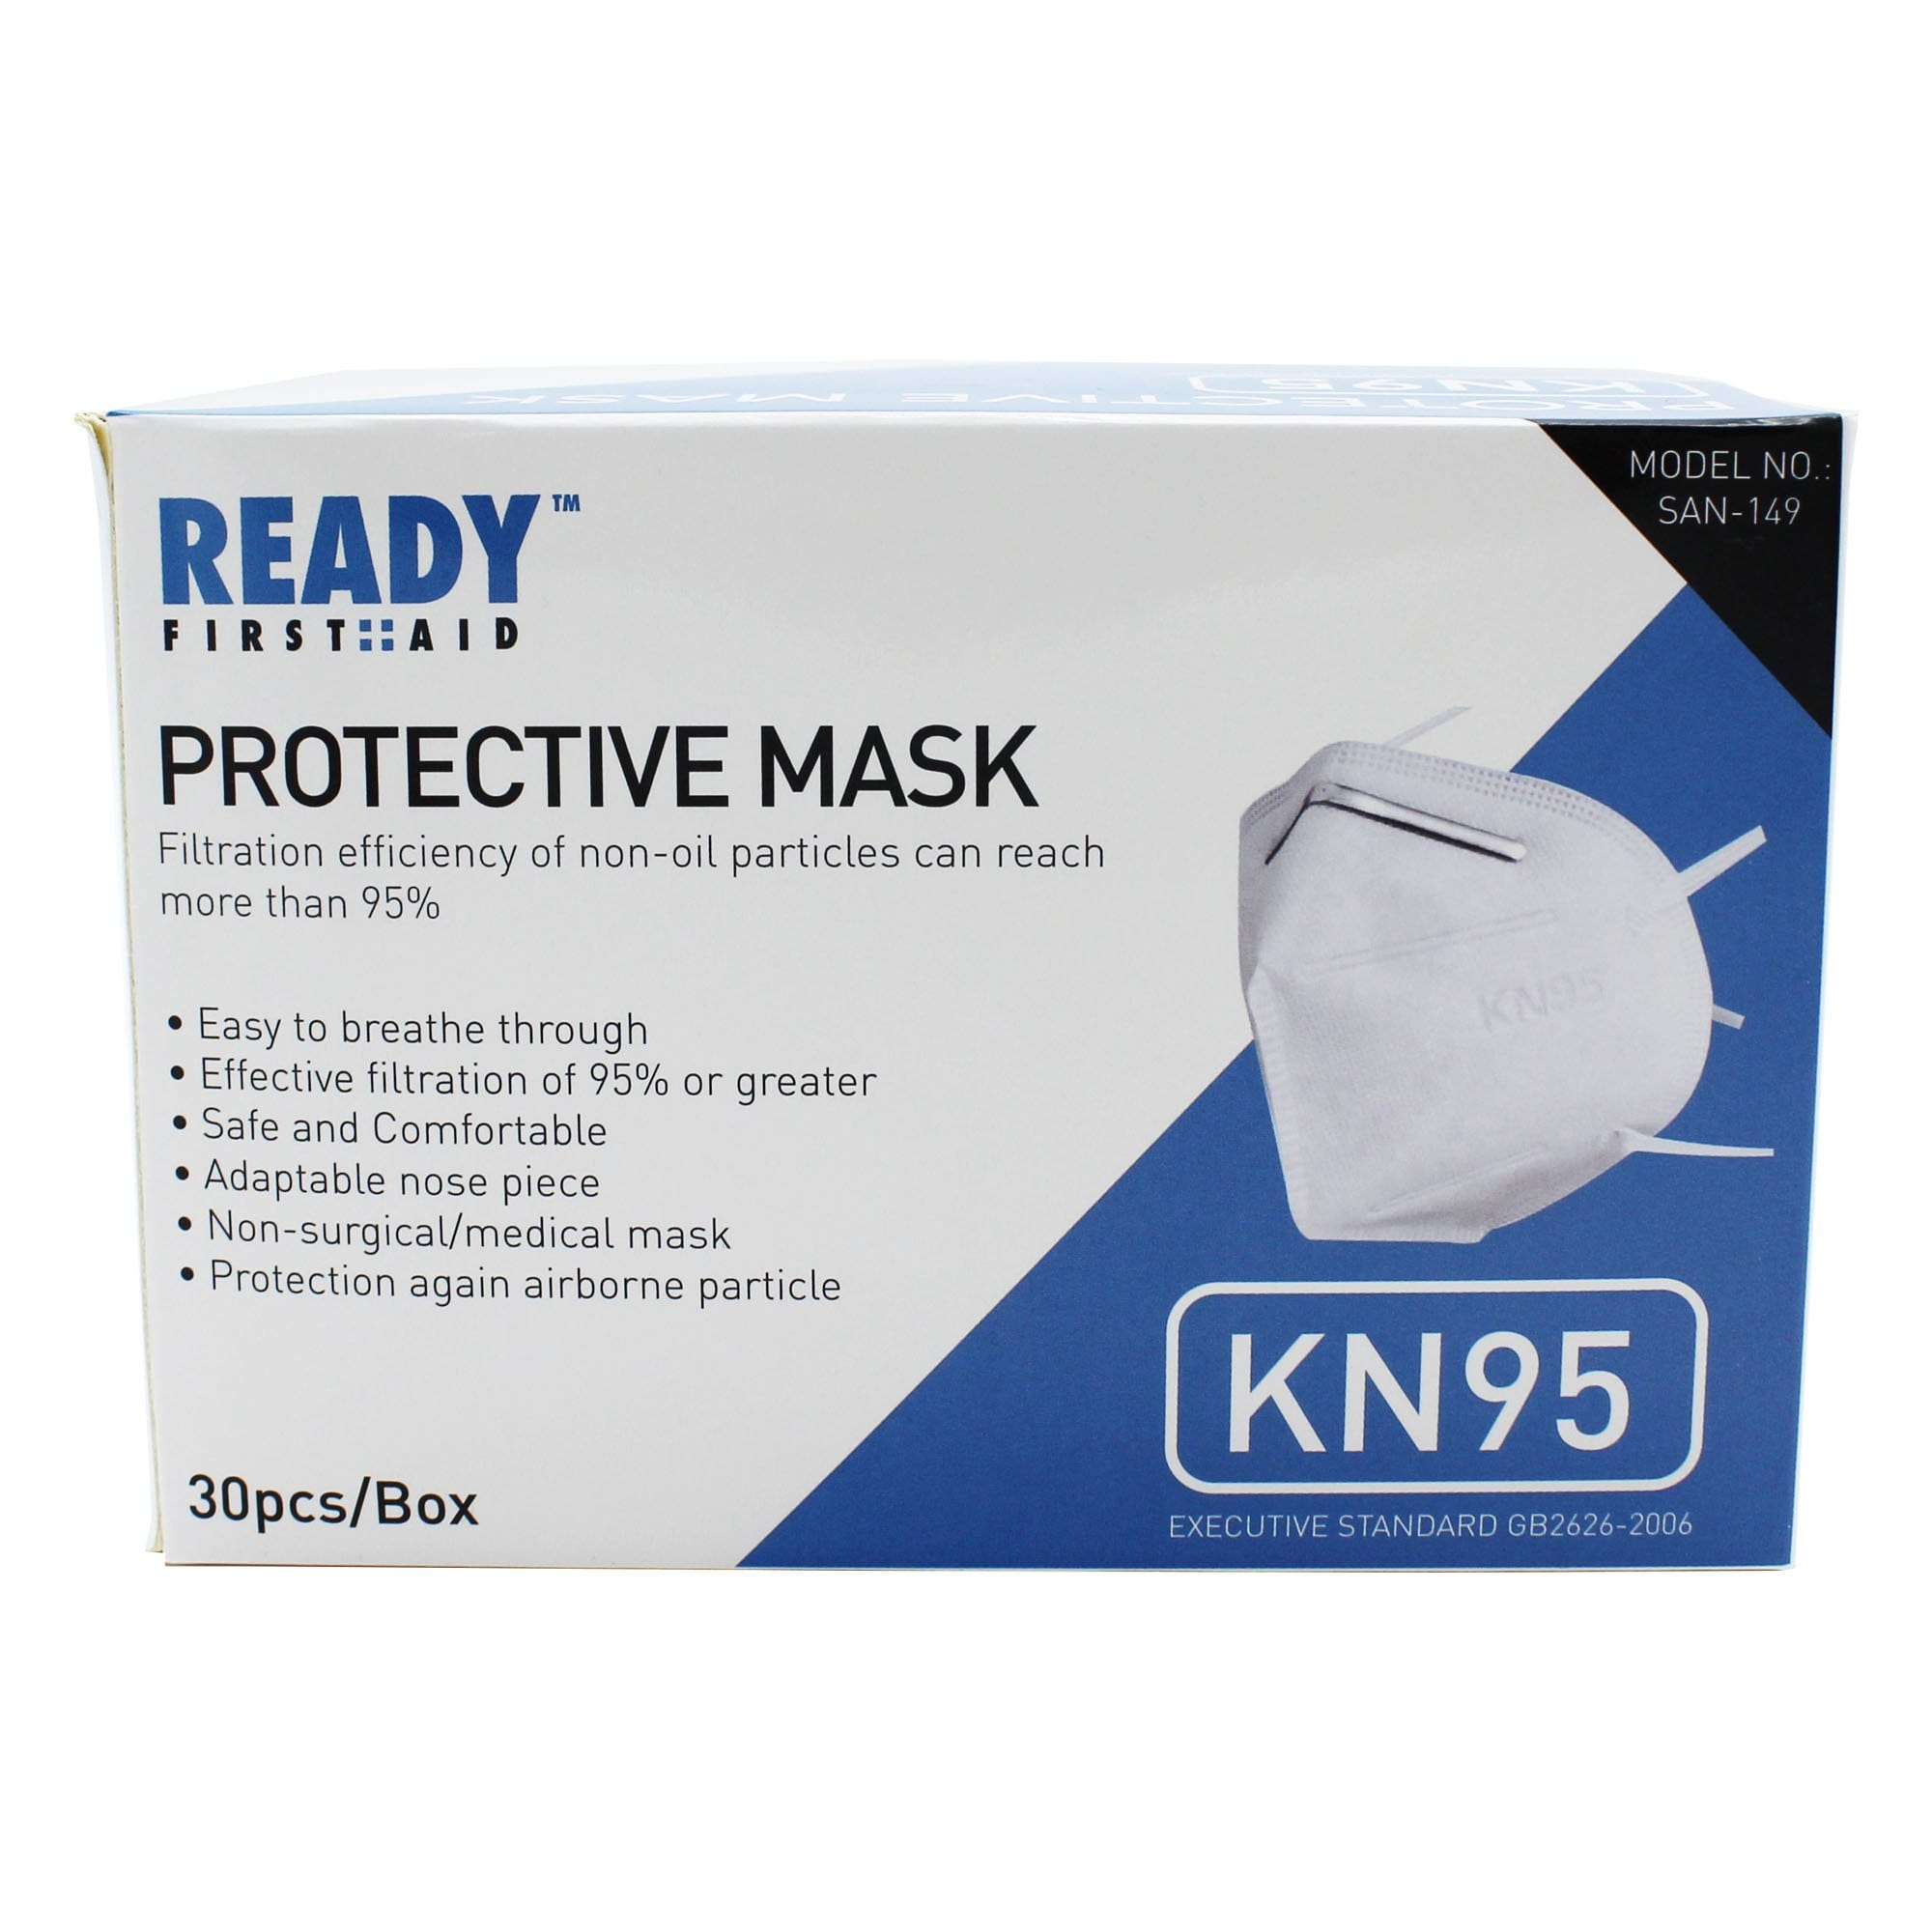 KN95 Protective Mask 4 Layer Pack of 30 ($5.33 Per Mask)